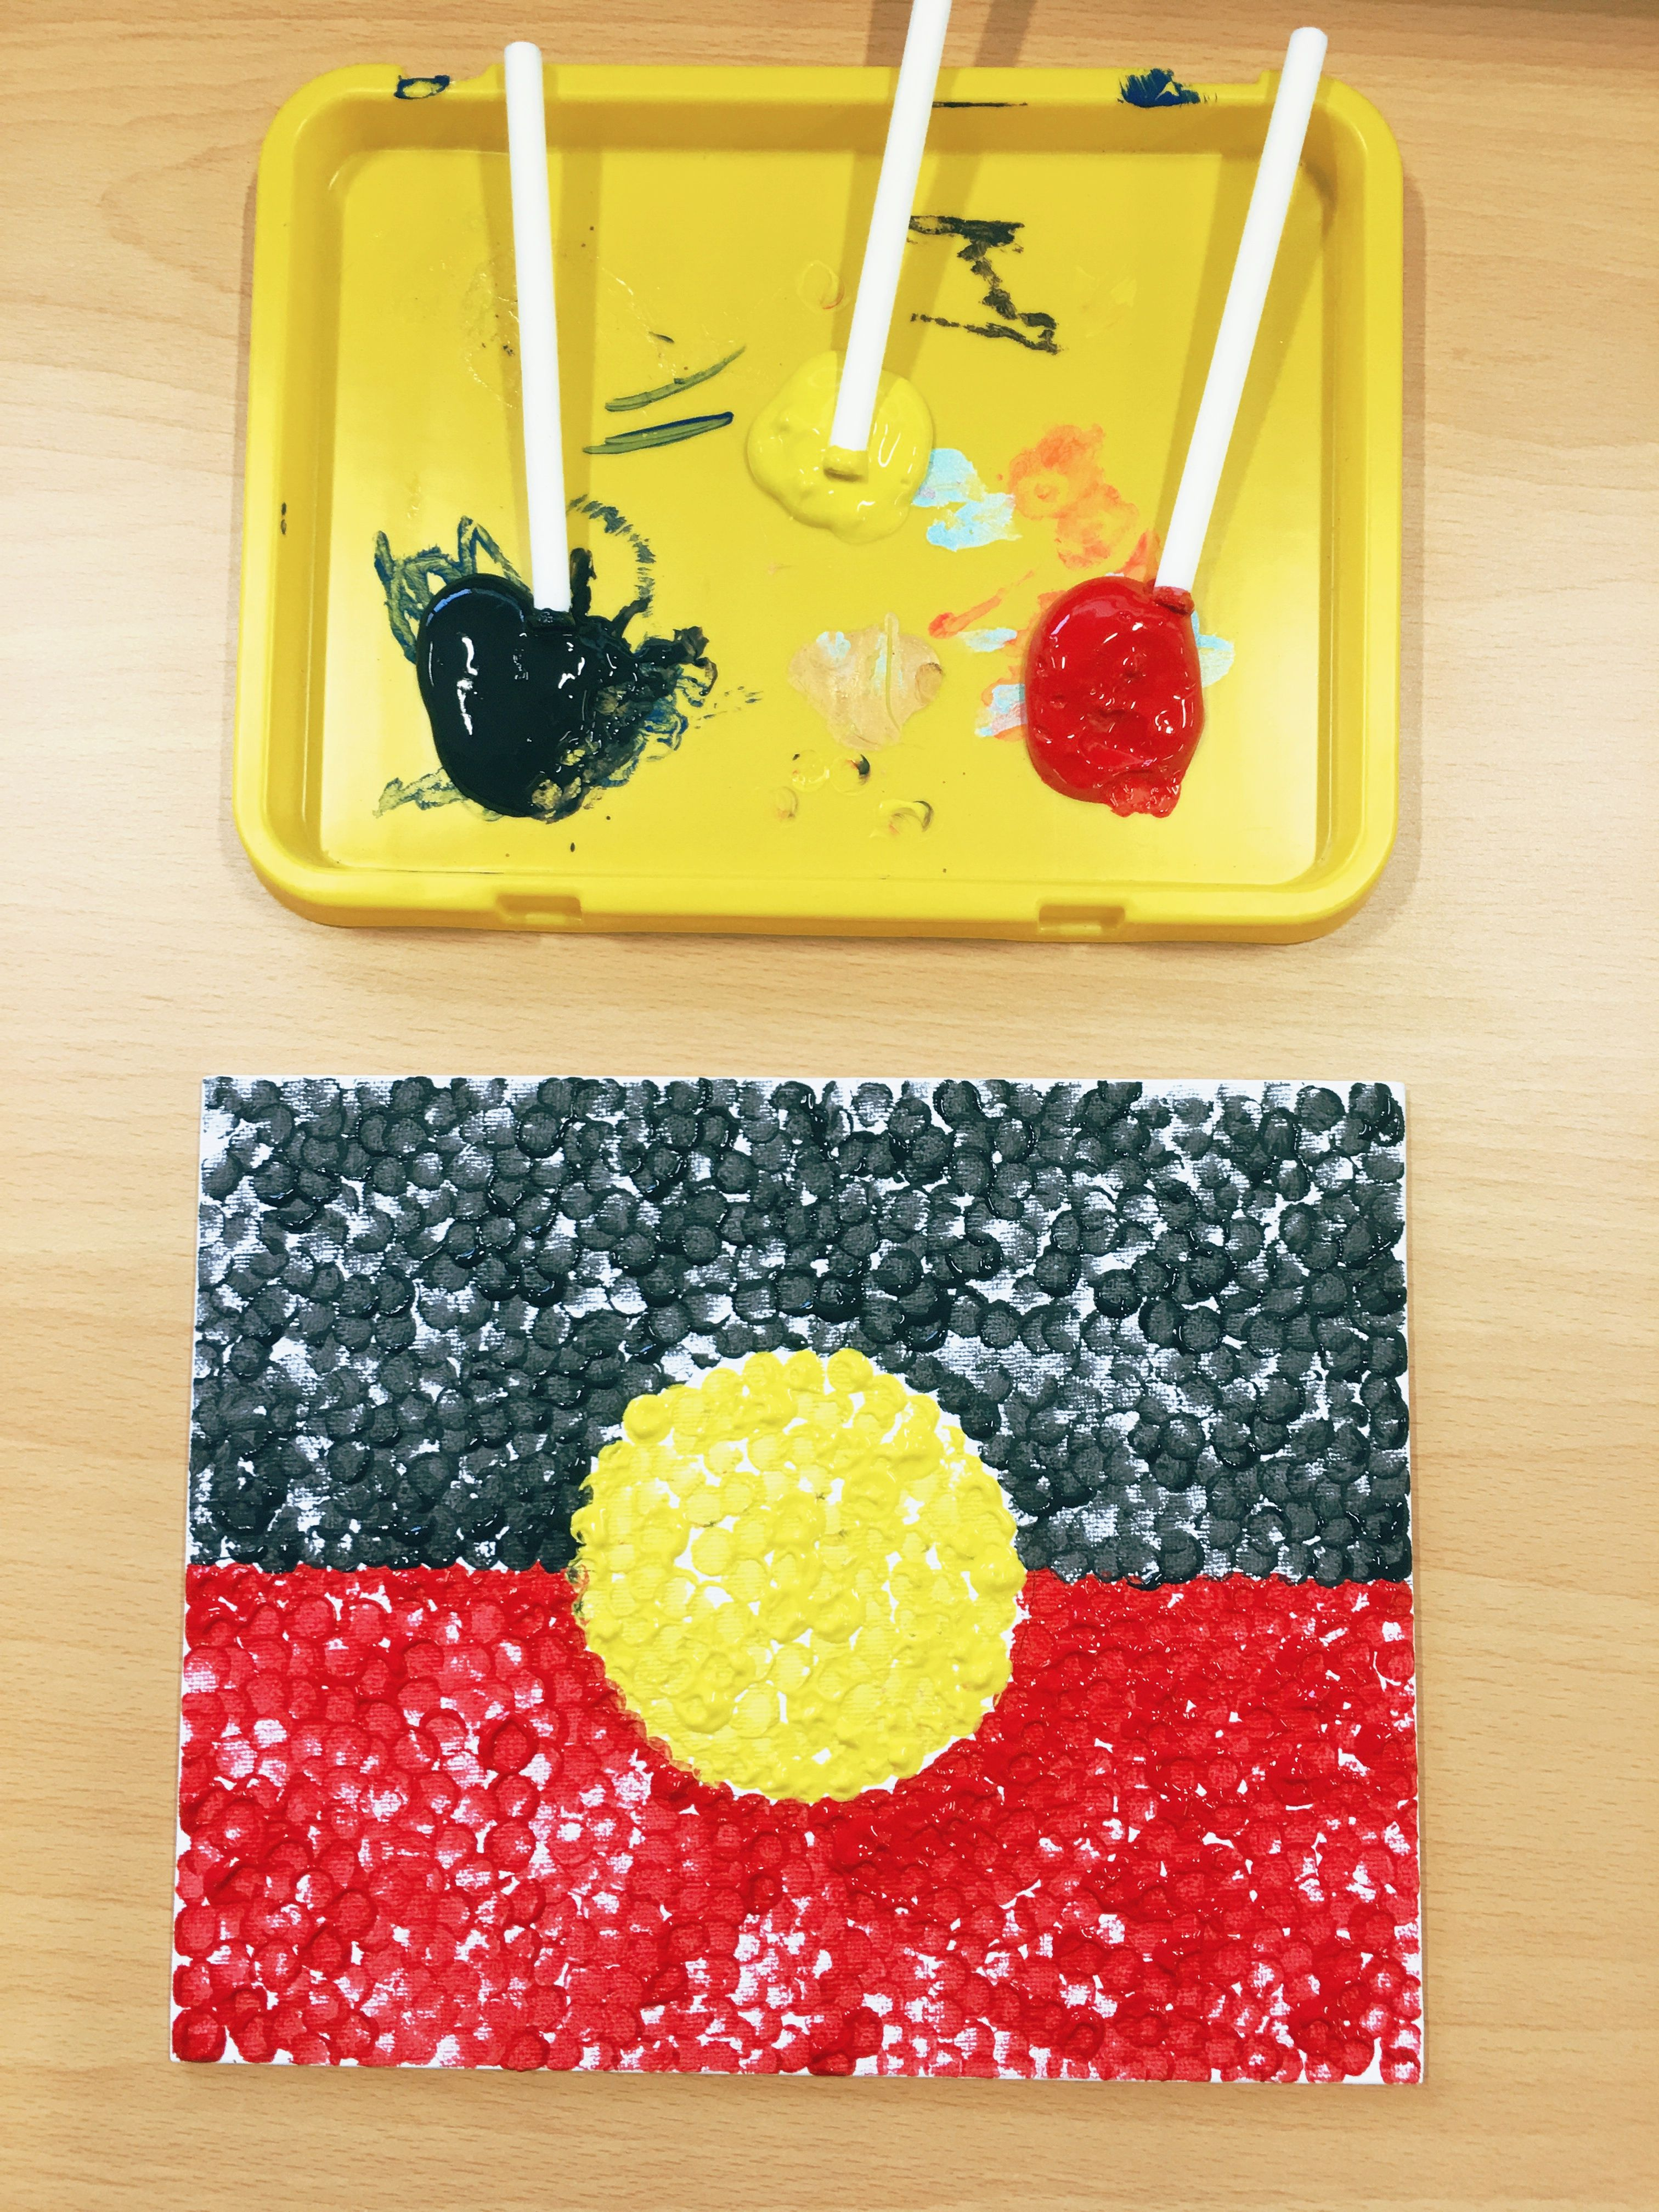 aboriginal art activities for preschoolers we made our own canvas aboriginal flags in honour of 248